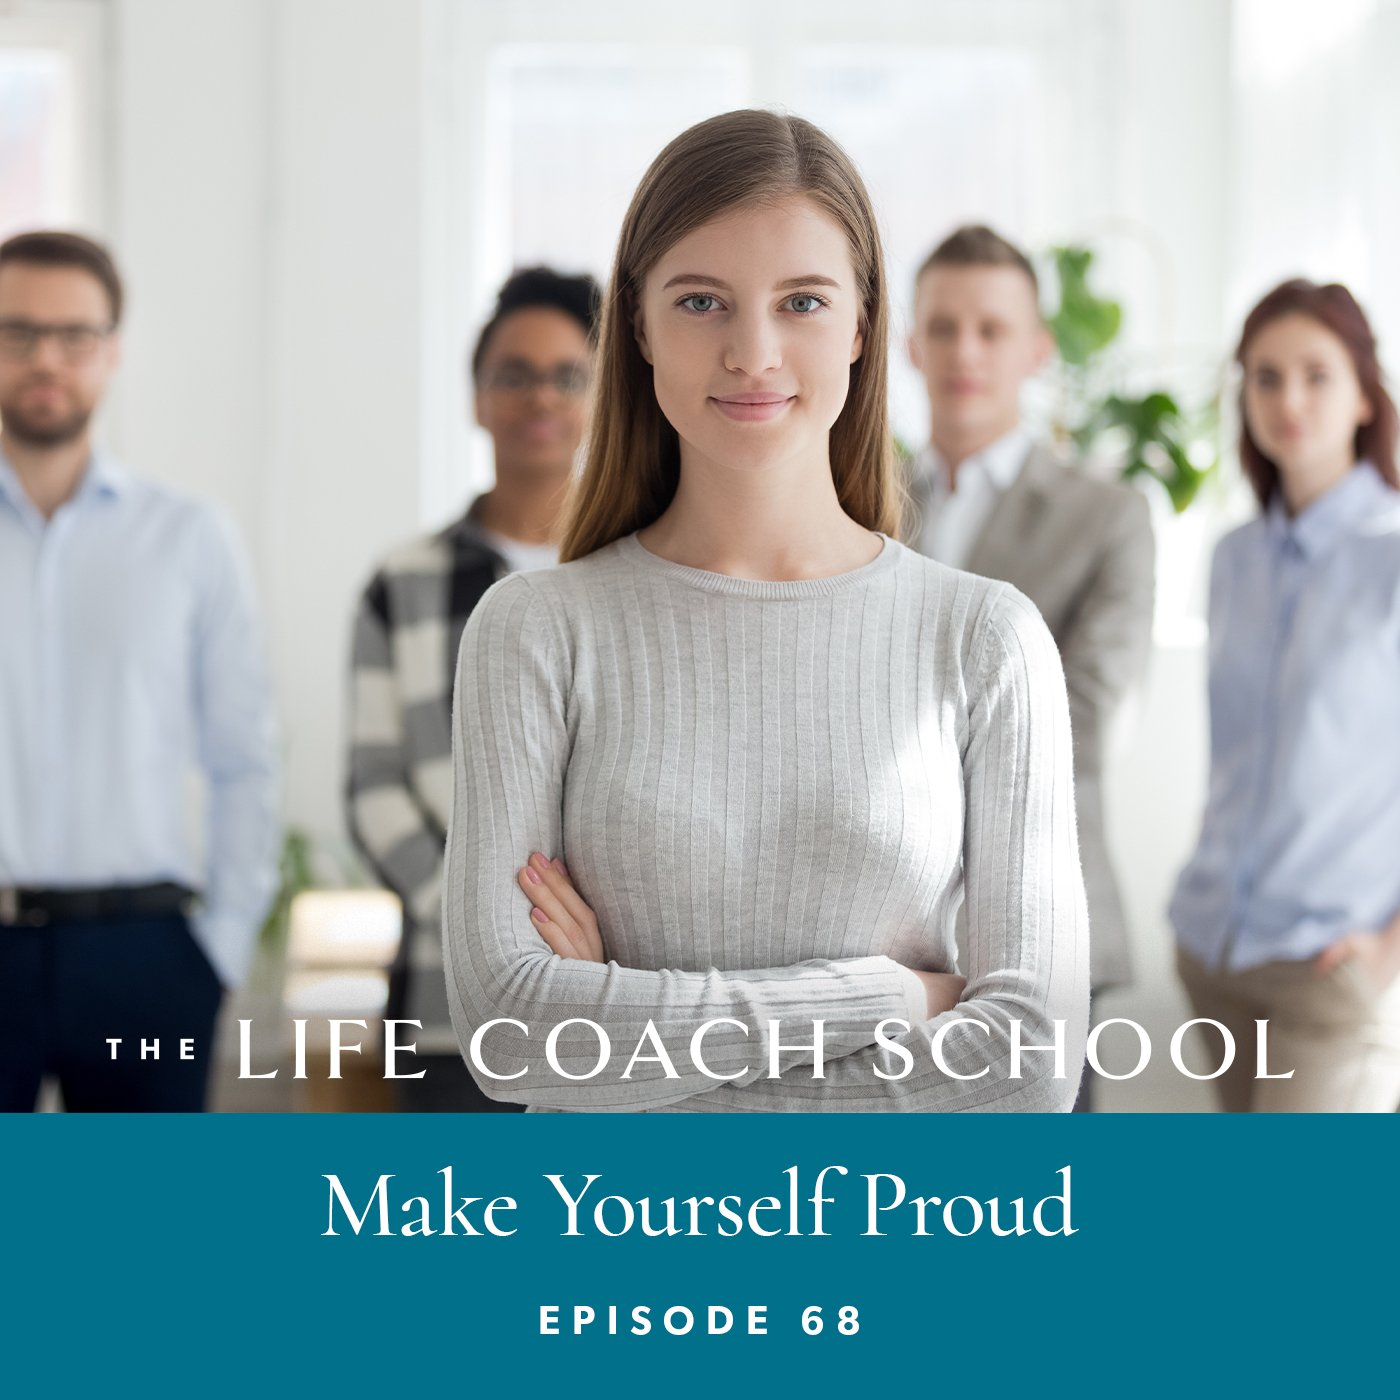 The Life Coach School Podcast with Brooke Castillo | Episode 68 | Make Yourself Proud